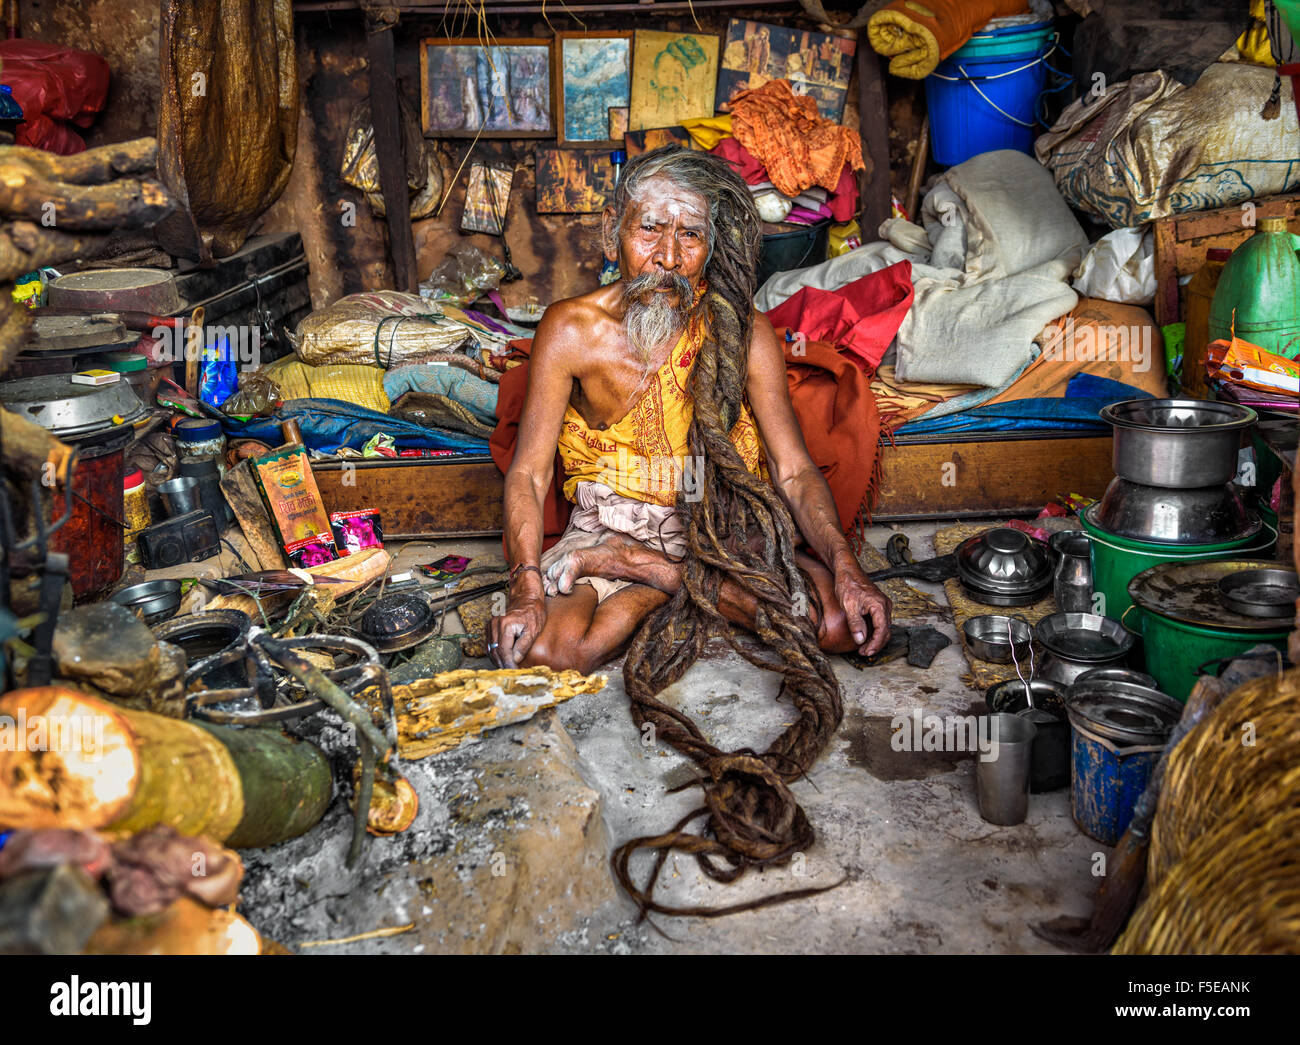 Shaiva sadhu (holy man) with traditional long hair living in Pashupatinath Temple - Stock Image